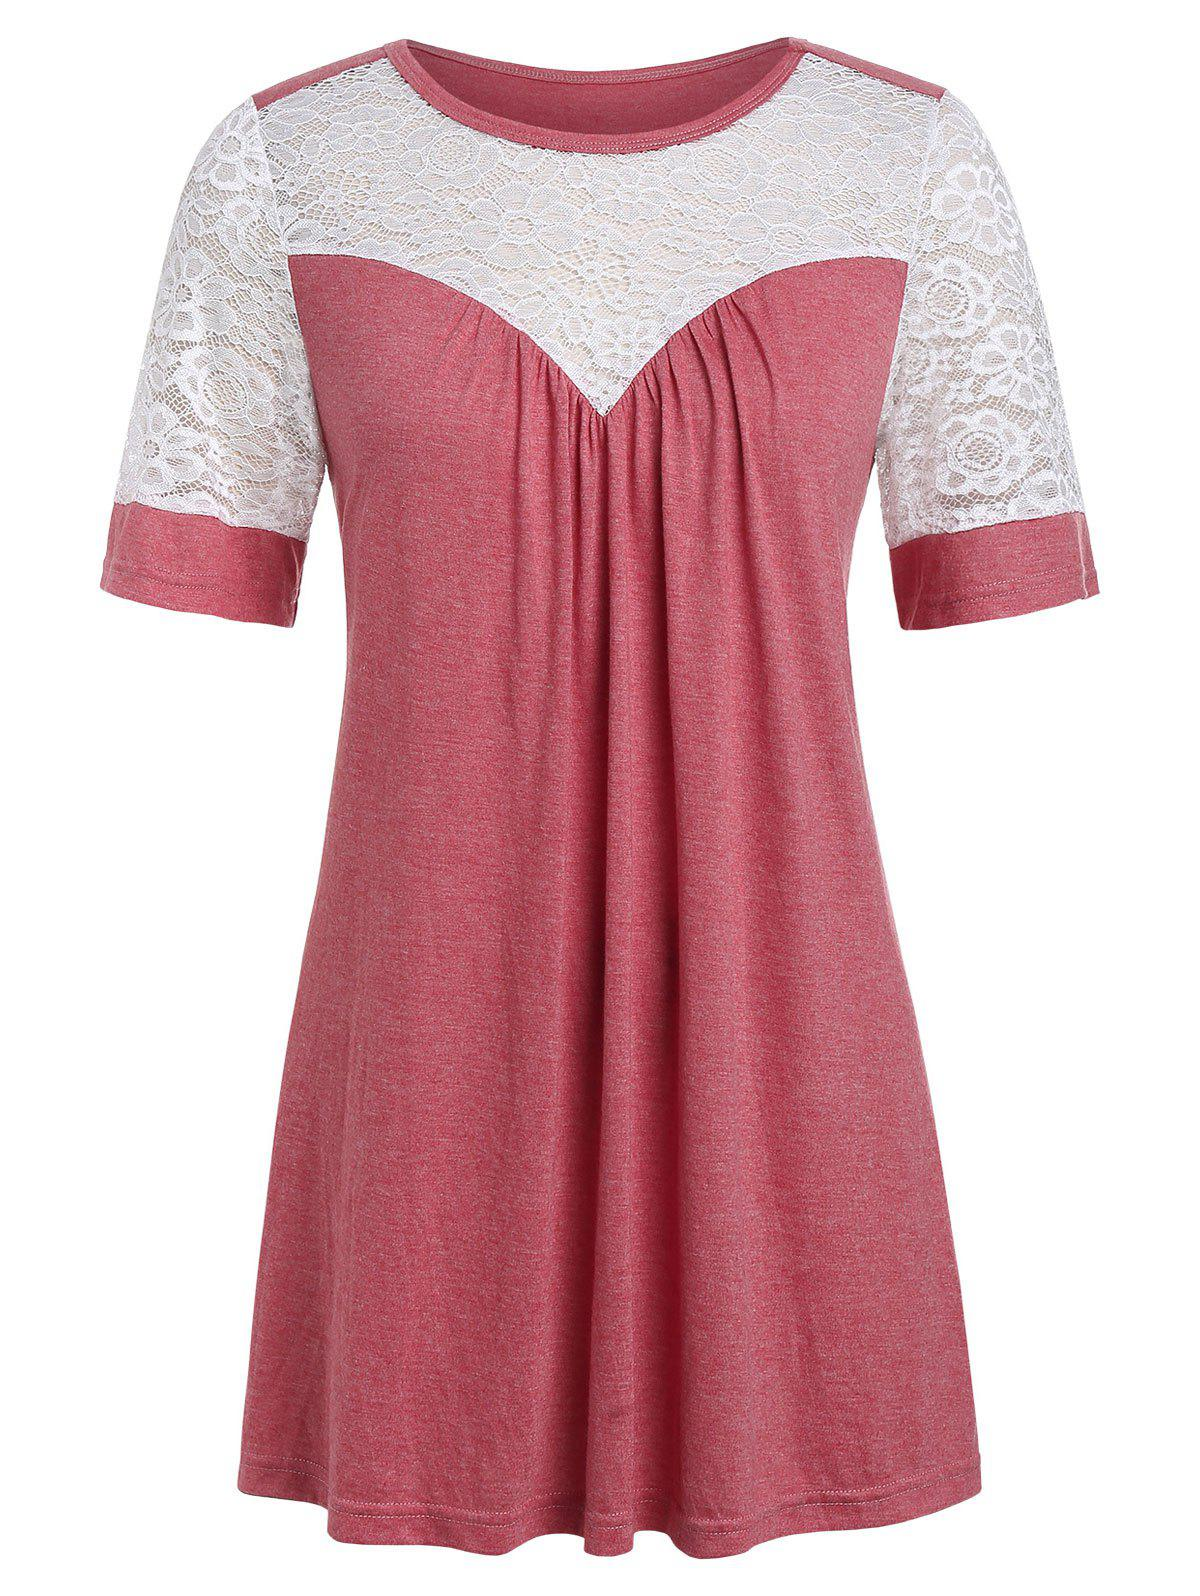 Plus Size Lace Insert Two Tone T Shirt - CHERRY RED L